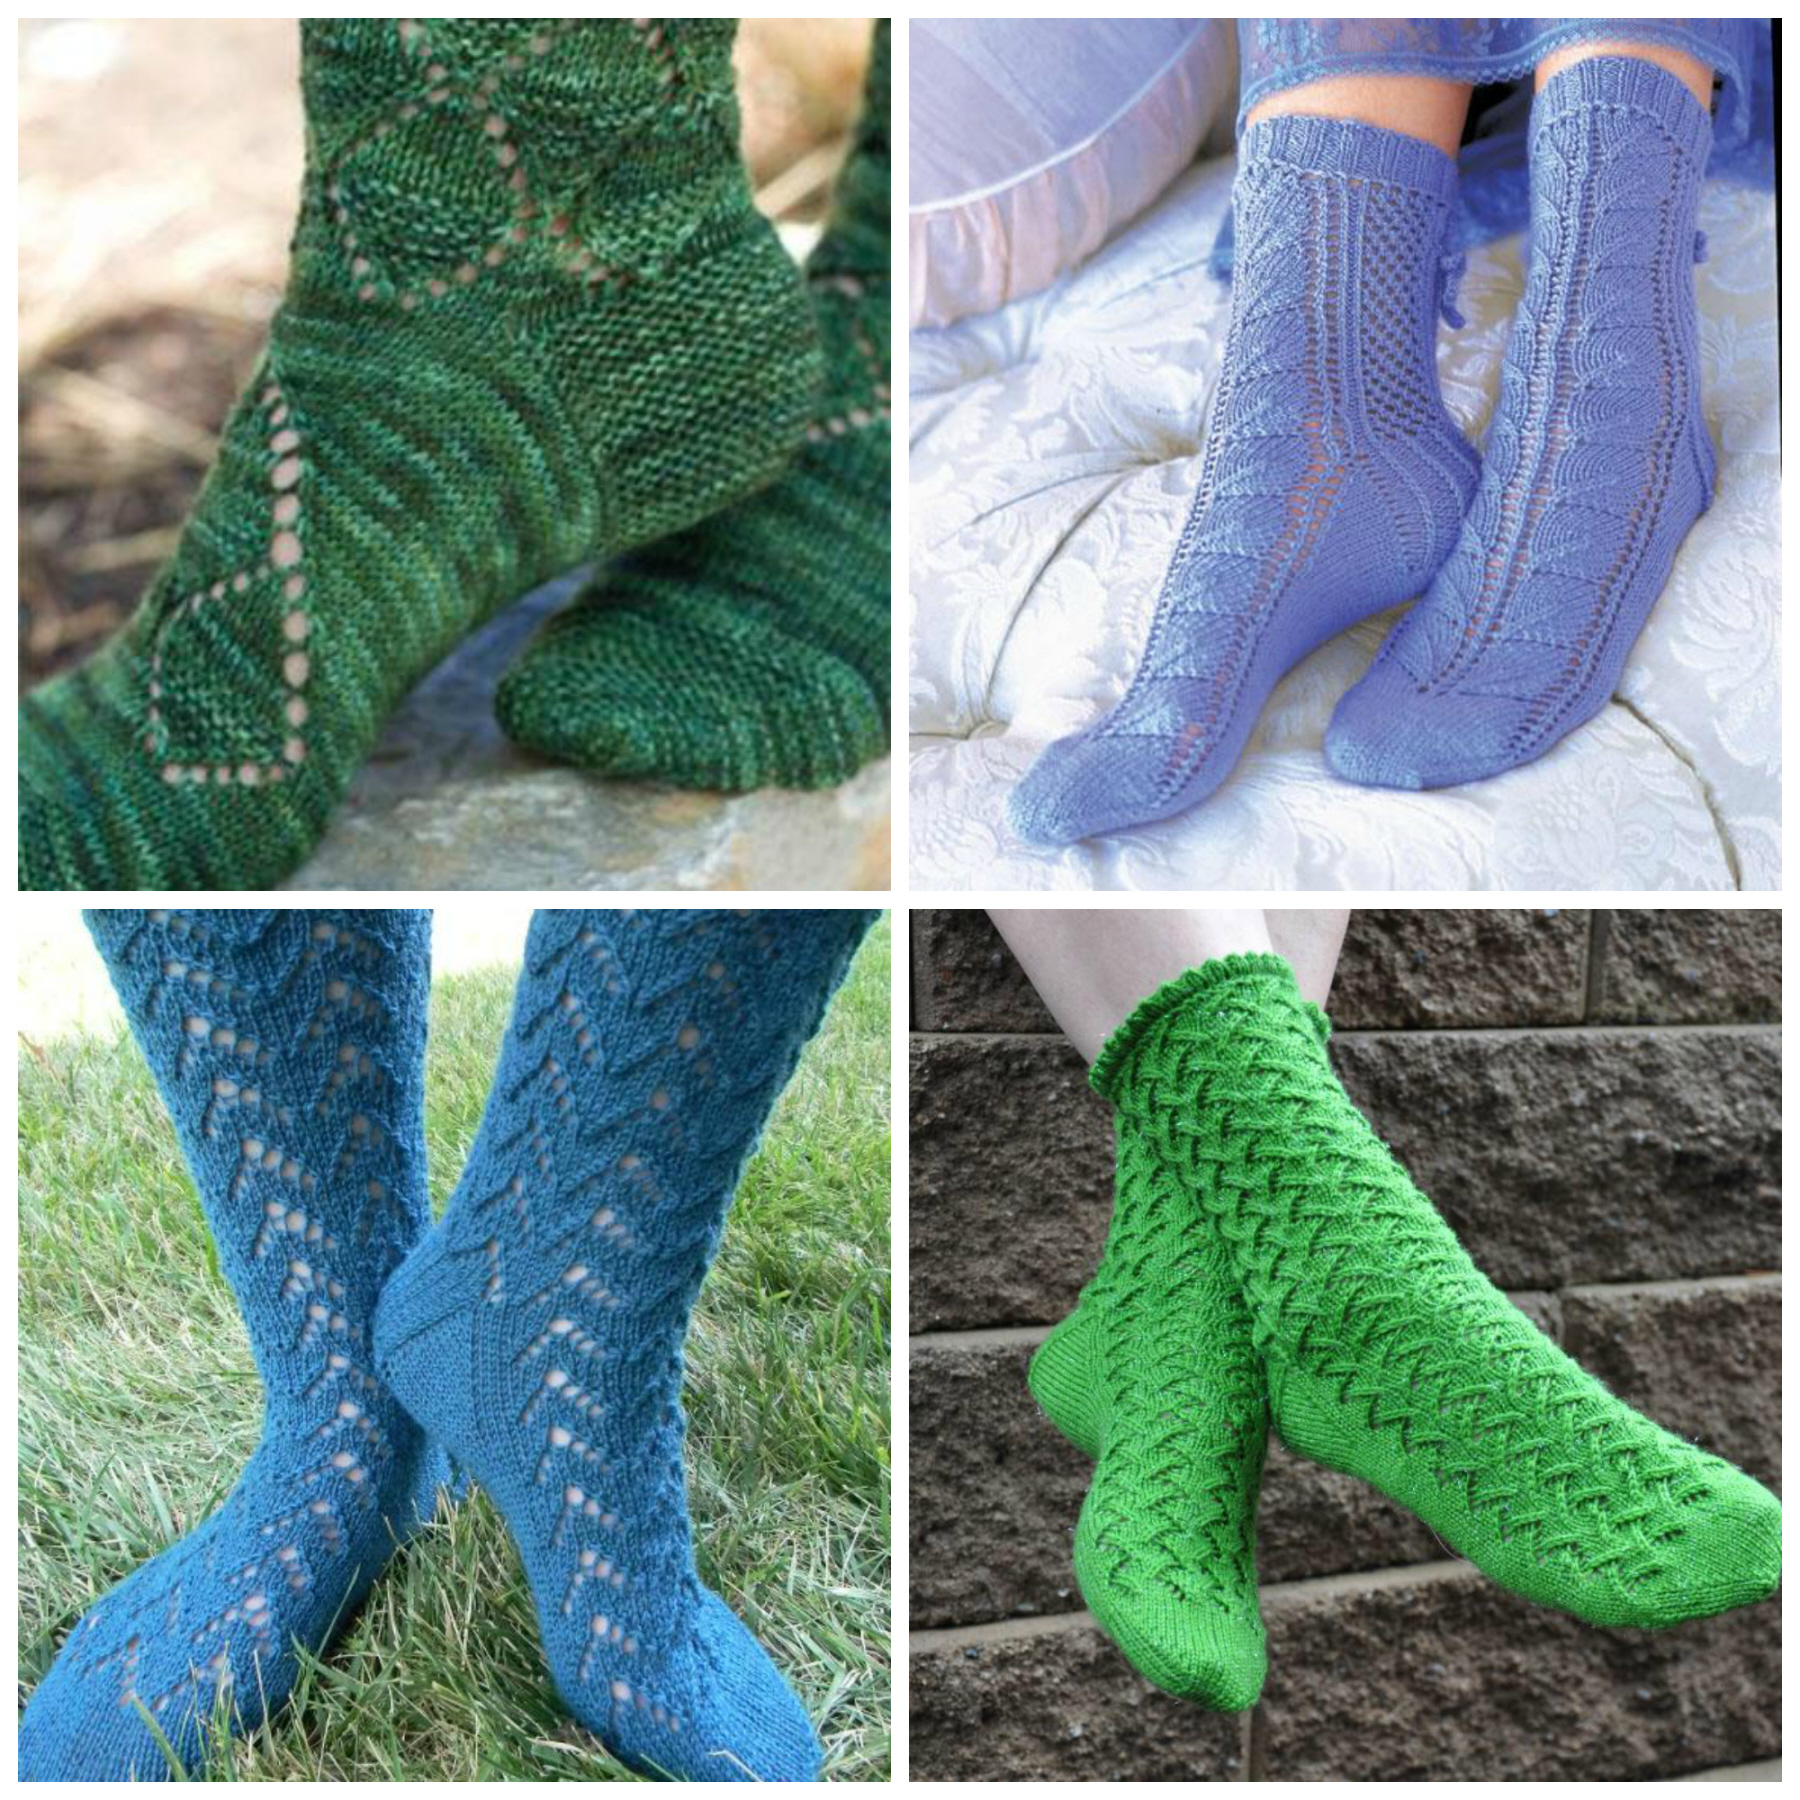 Lace Socks Knitting Patterns for Summer